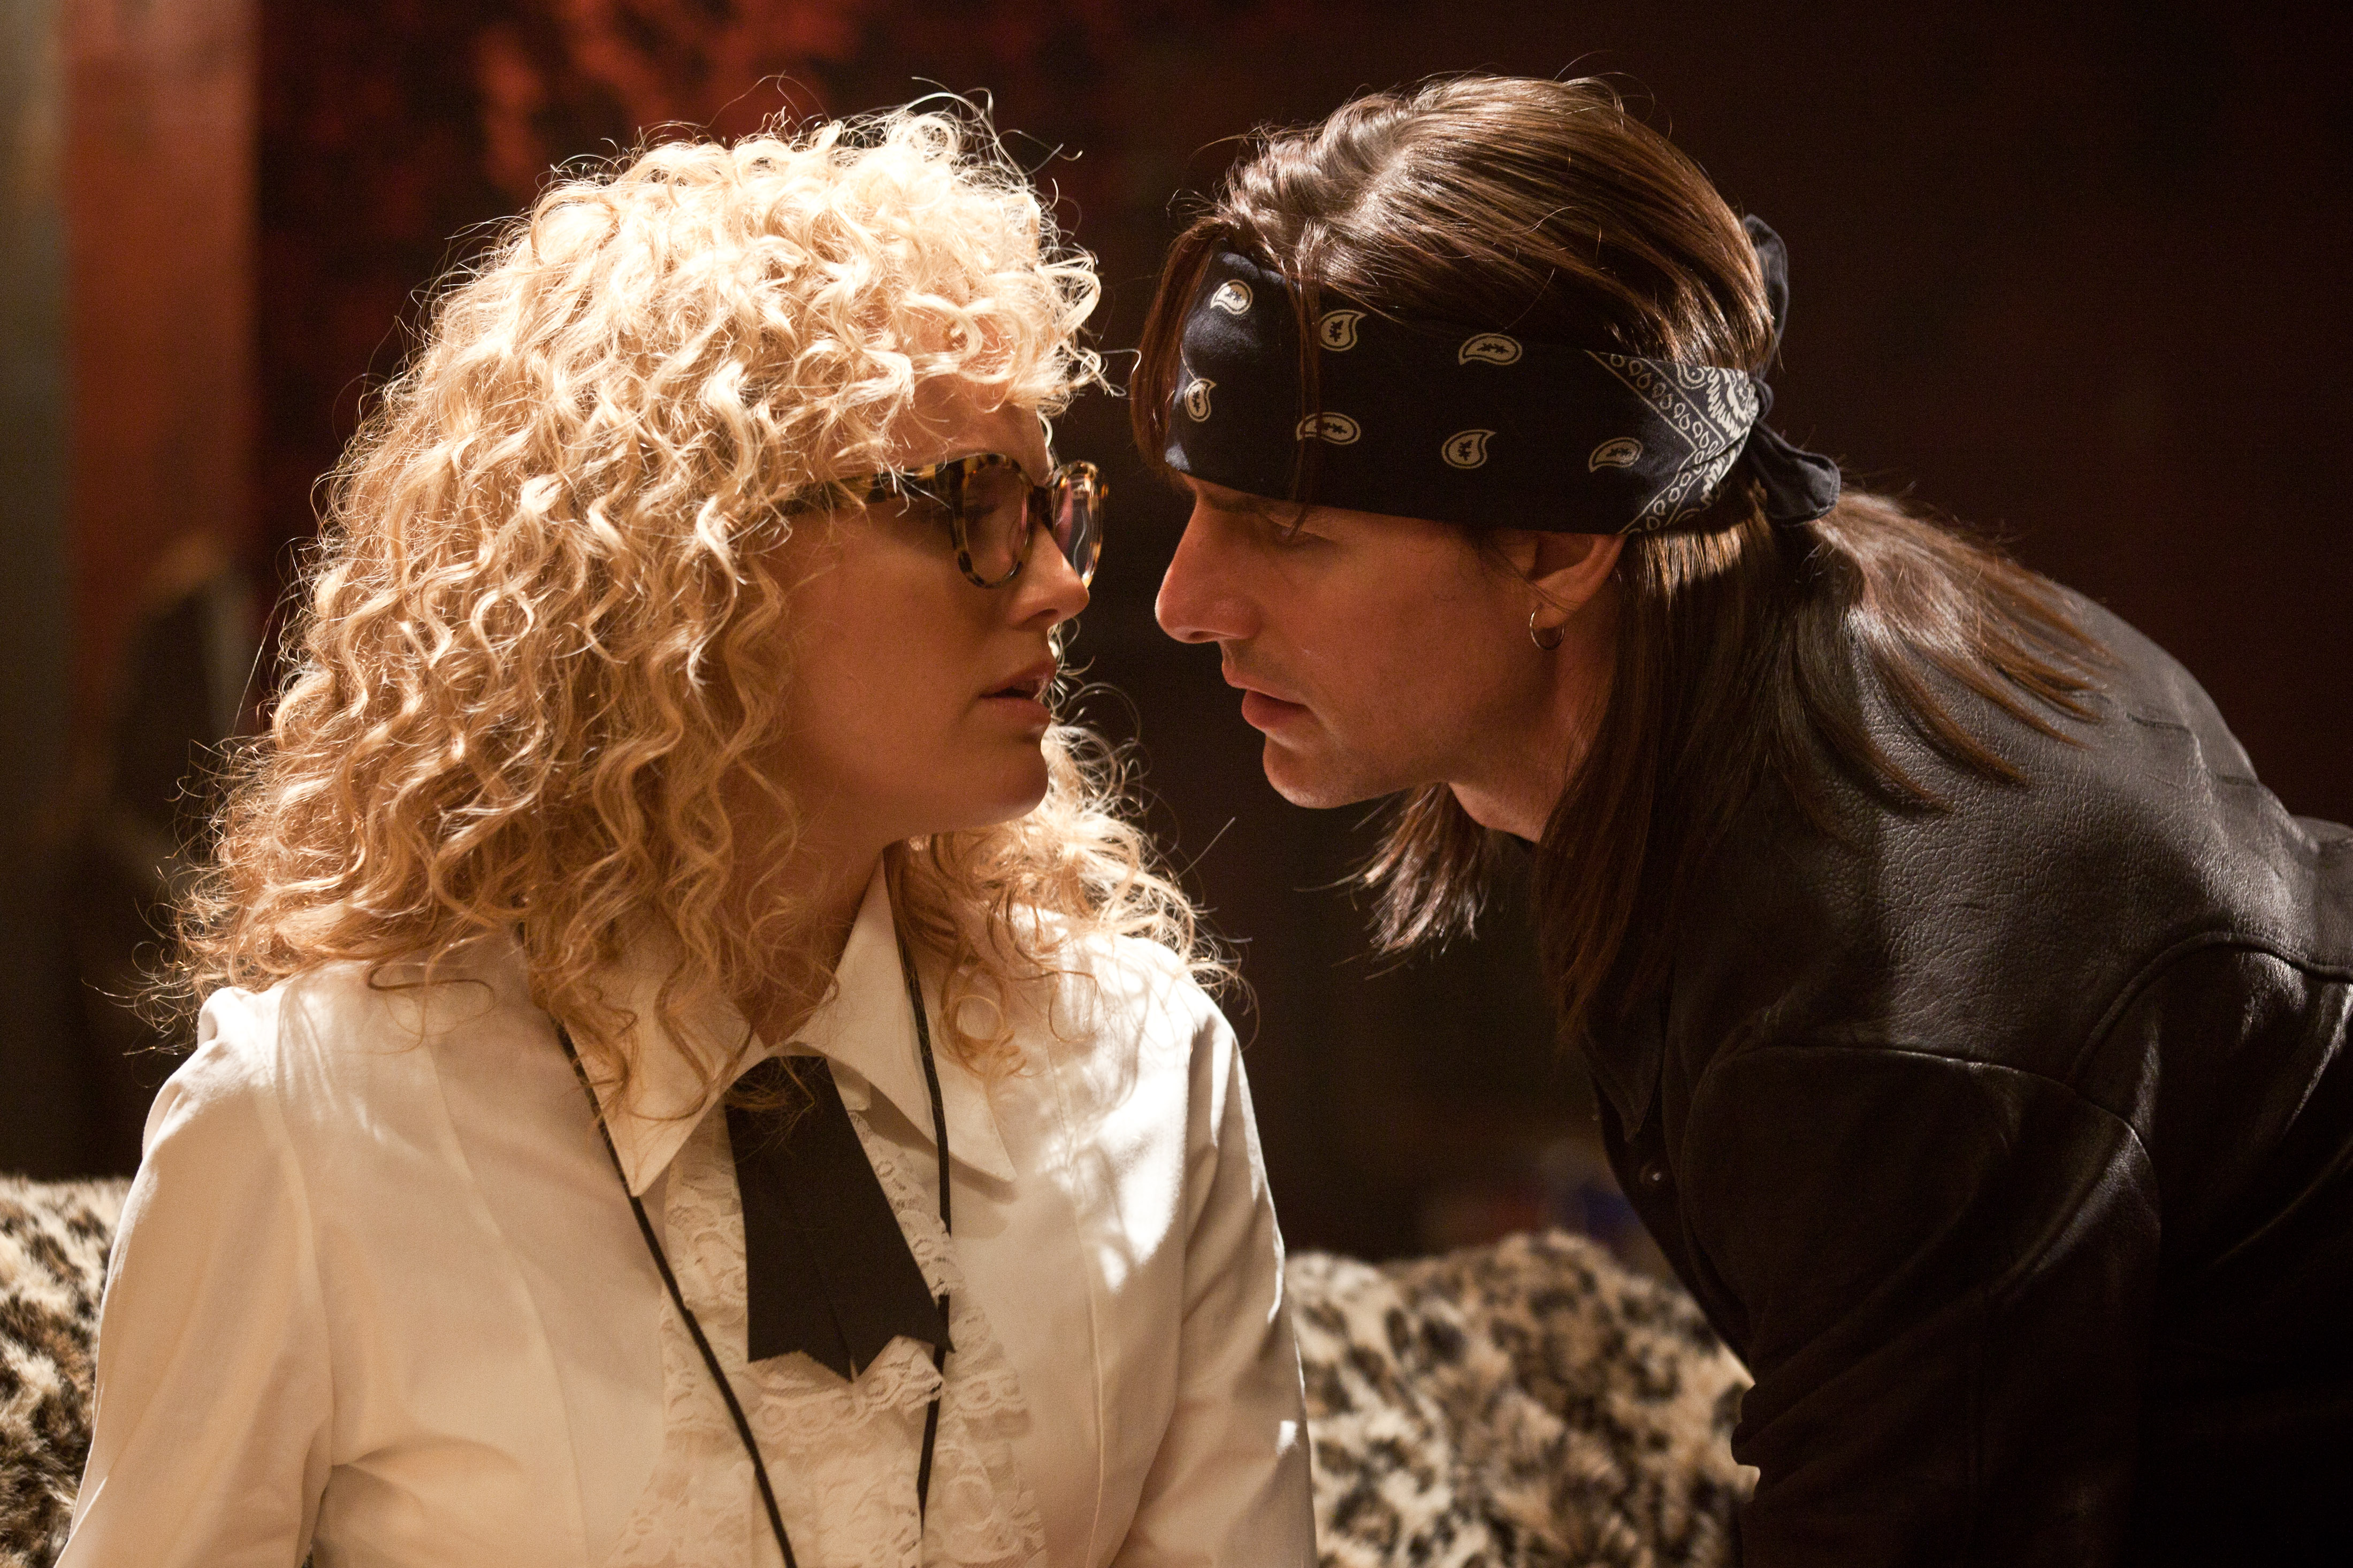 ROCK OF AGES Movie Images Featuring Tom Cruise Collider 4398x2931